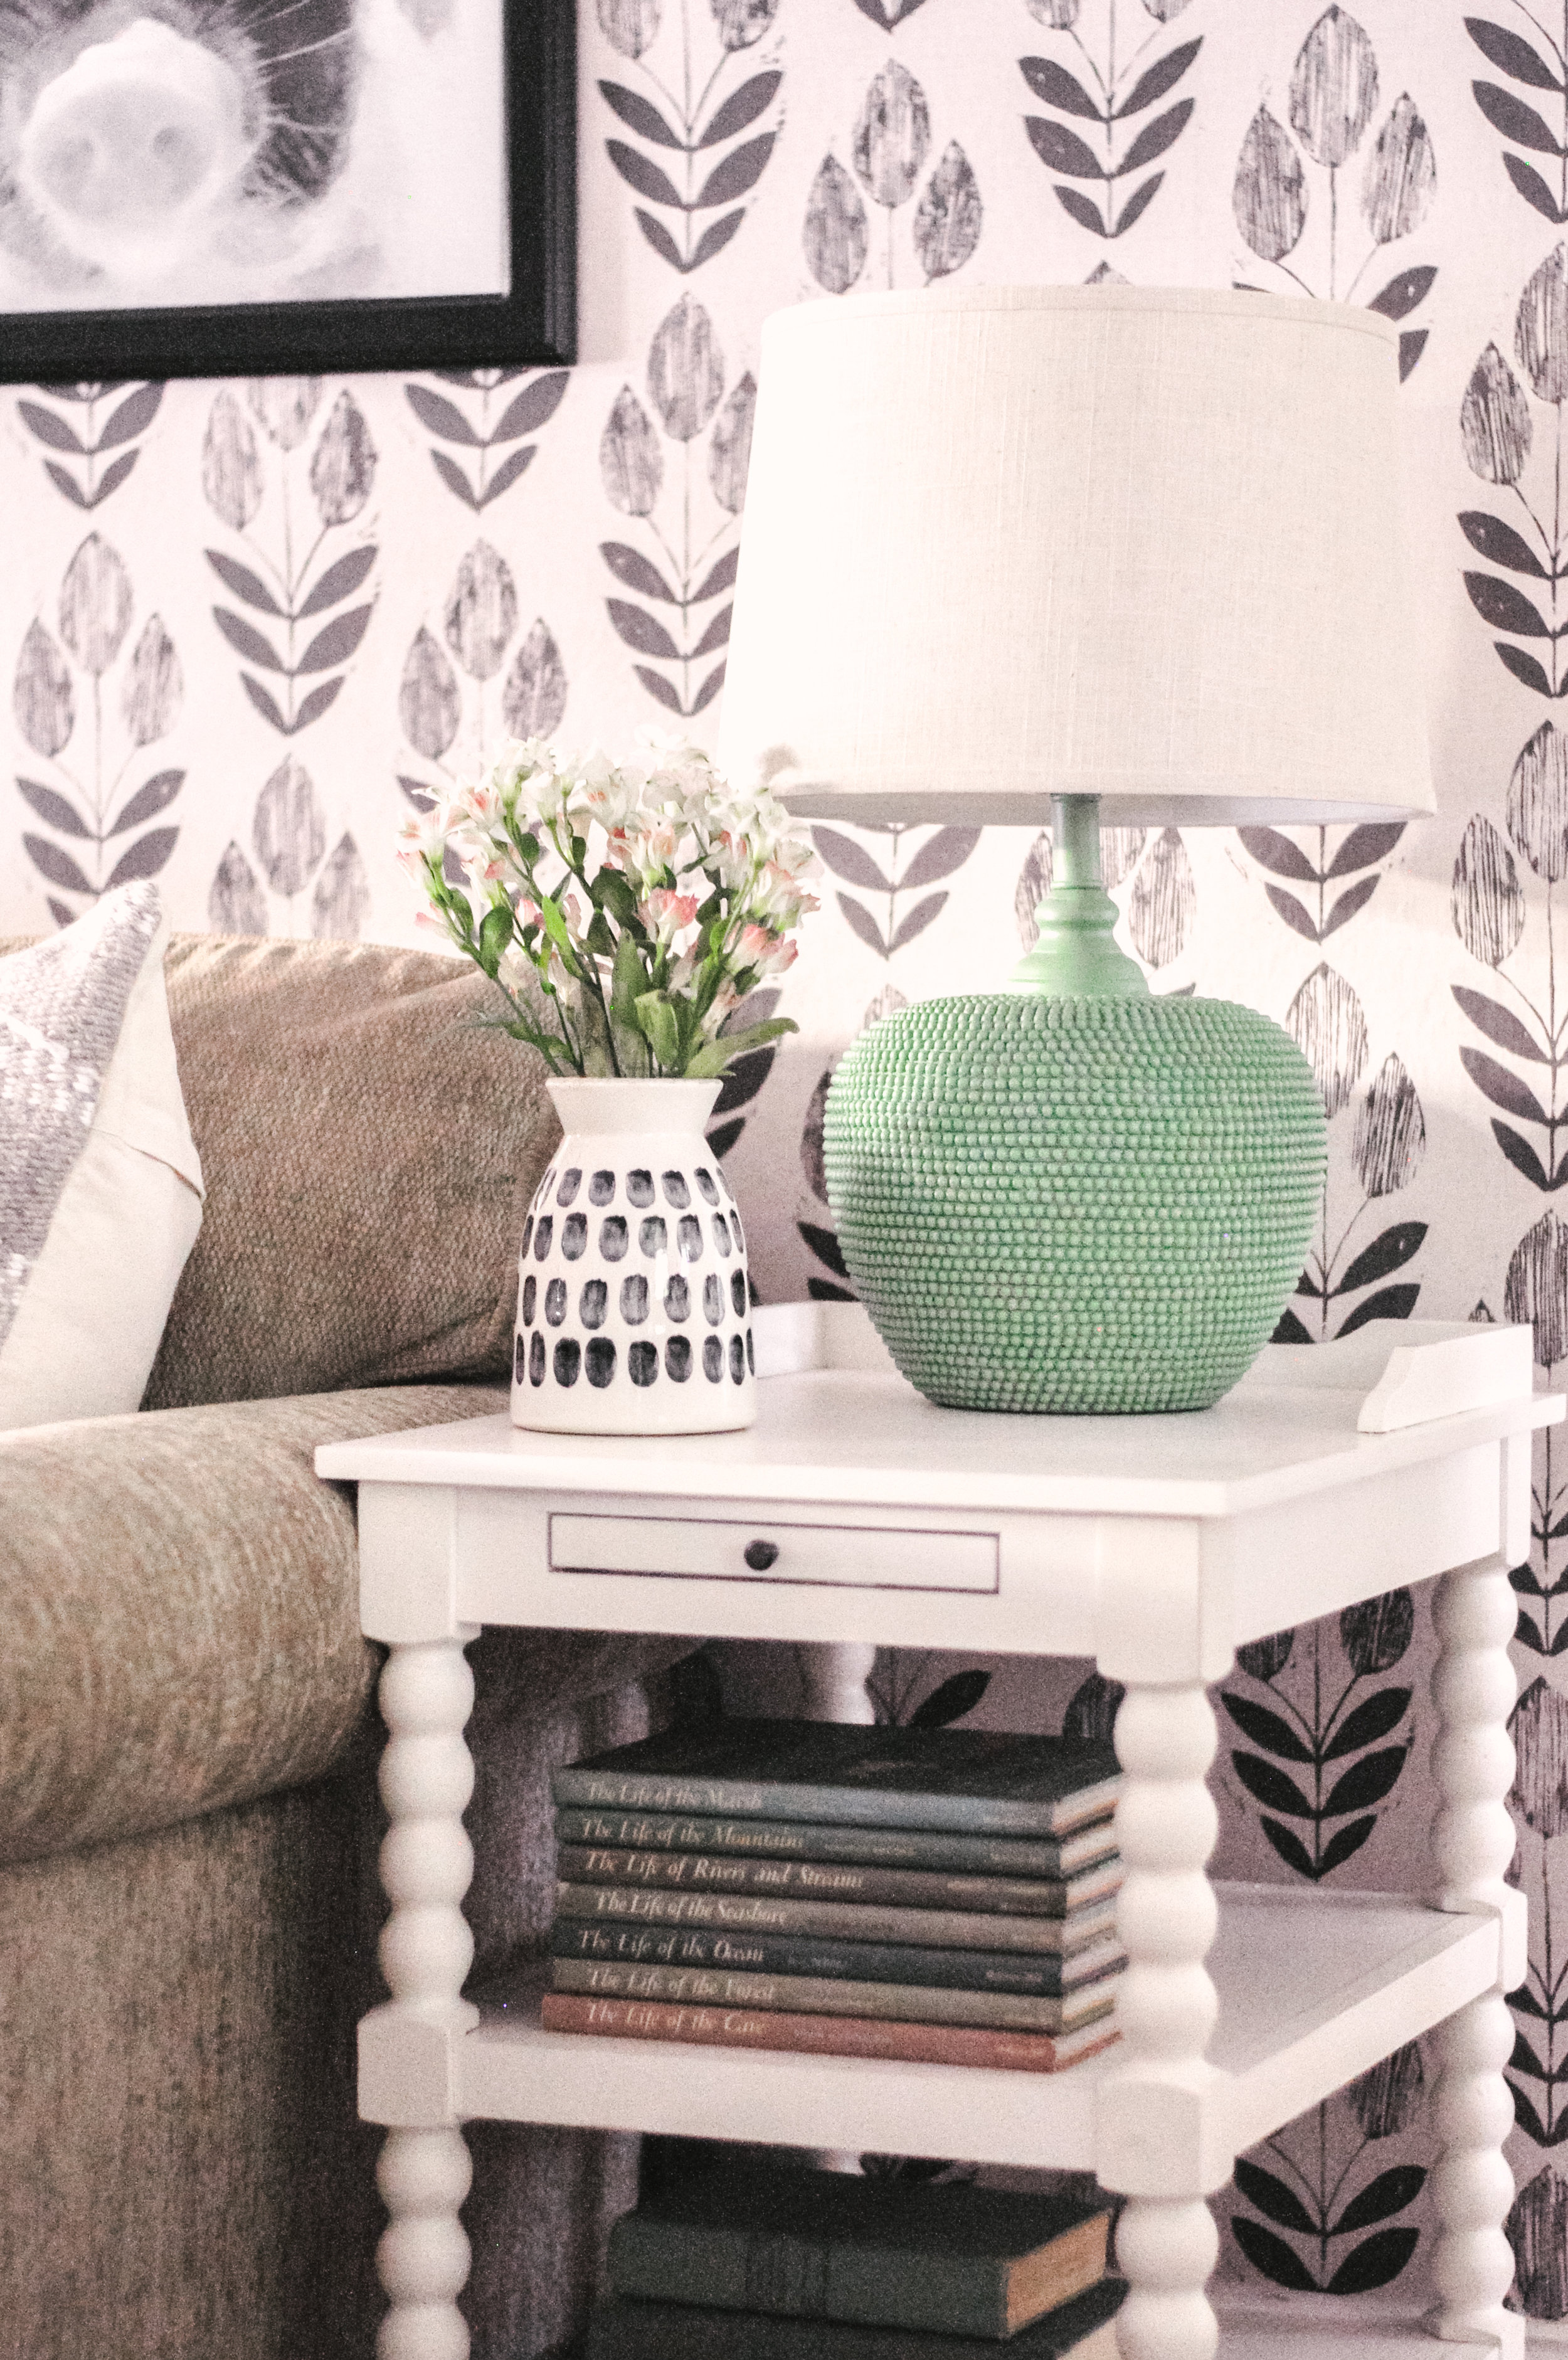 Saguenay Chairside Table in White